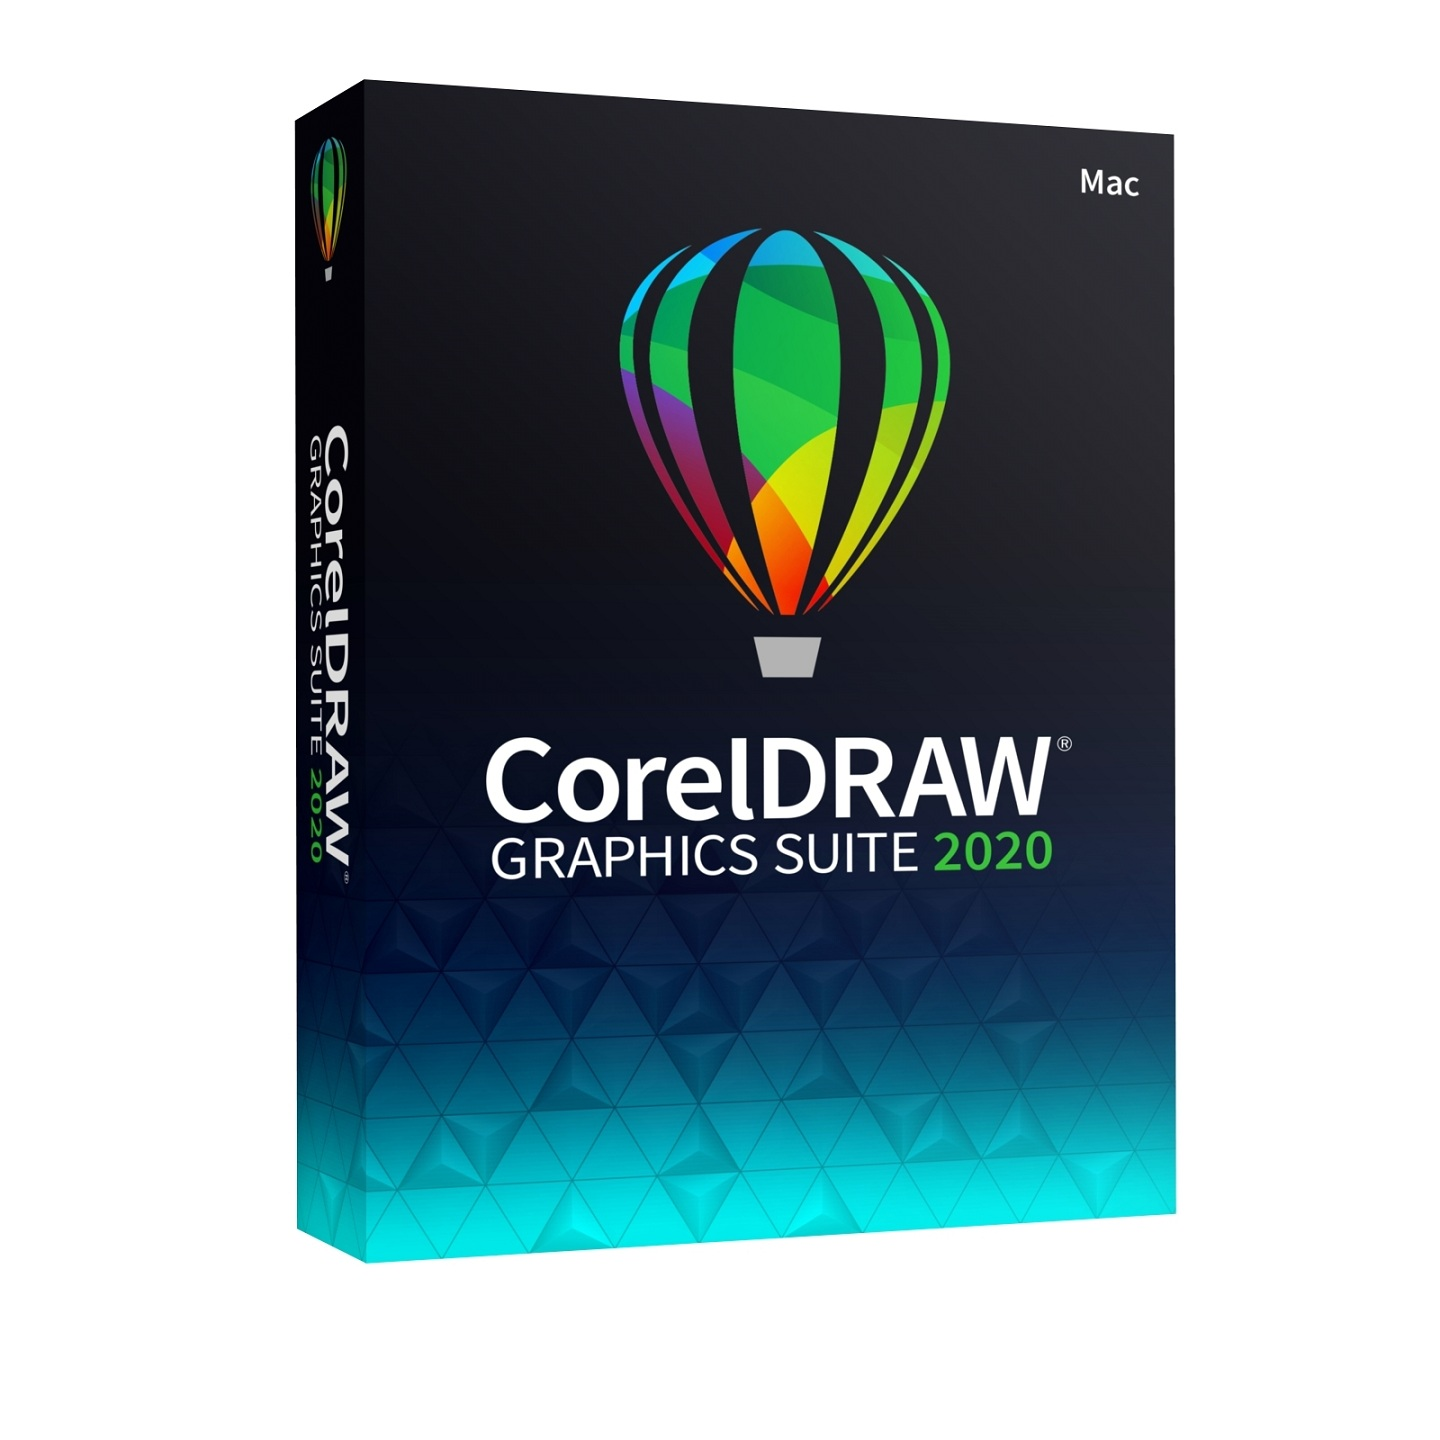 CorelDRAW Graphics Suite 2020 Single User Business License (MAC)